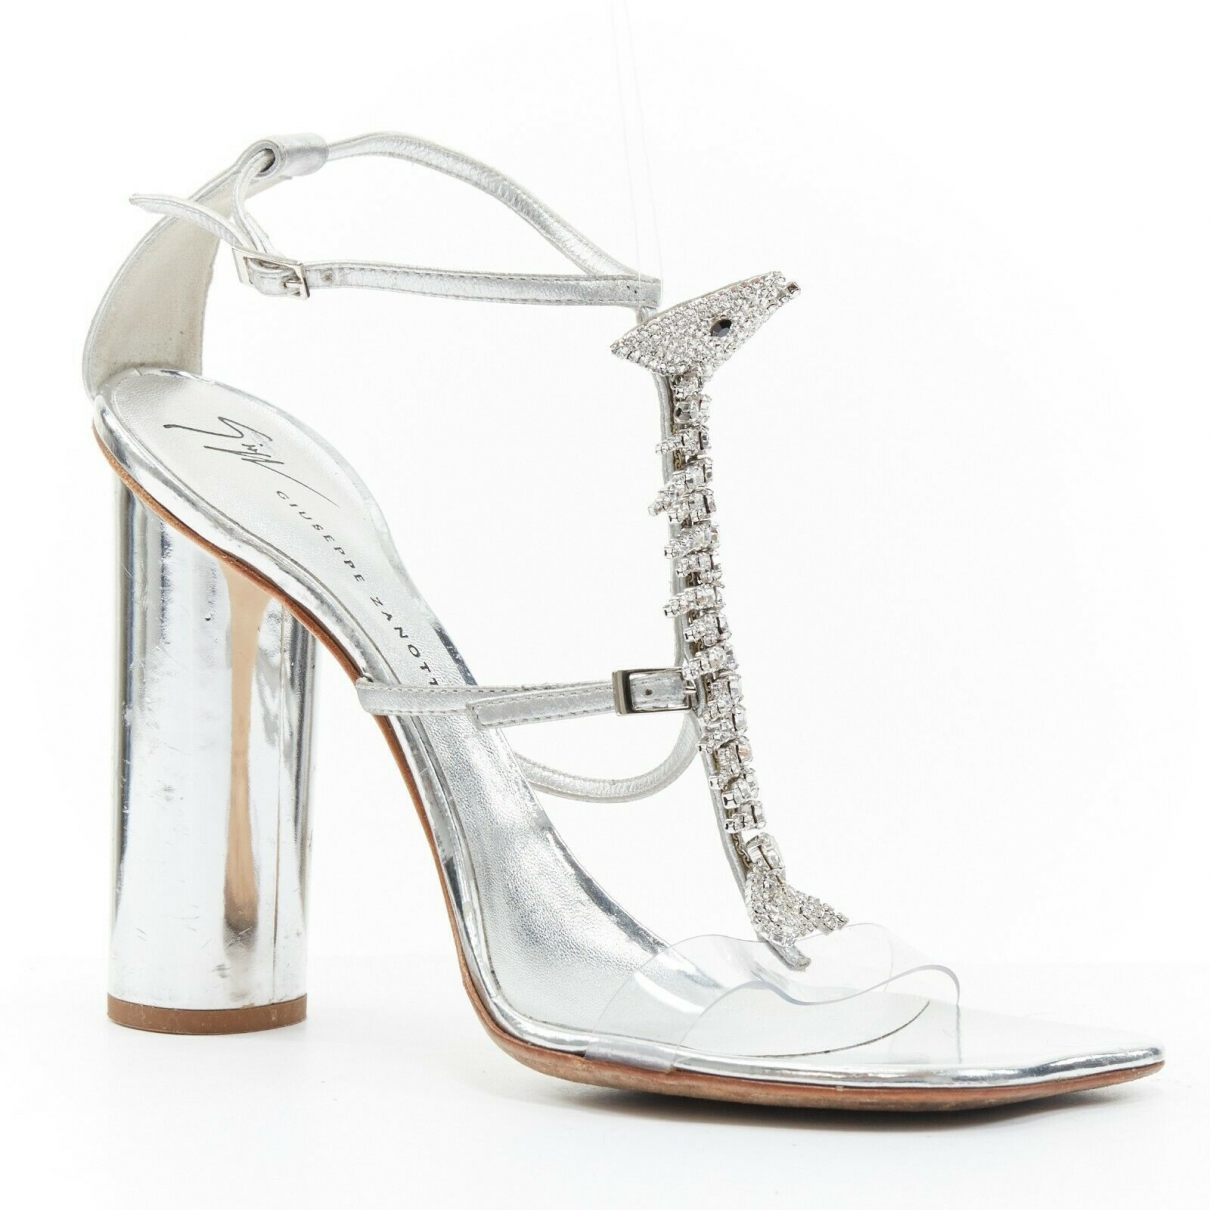 Giuseppe Zanotti \N Silver Leather Sandals for Women 39 EU